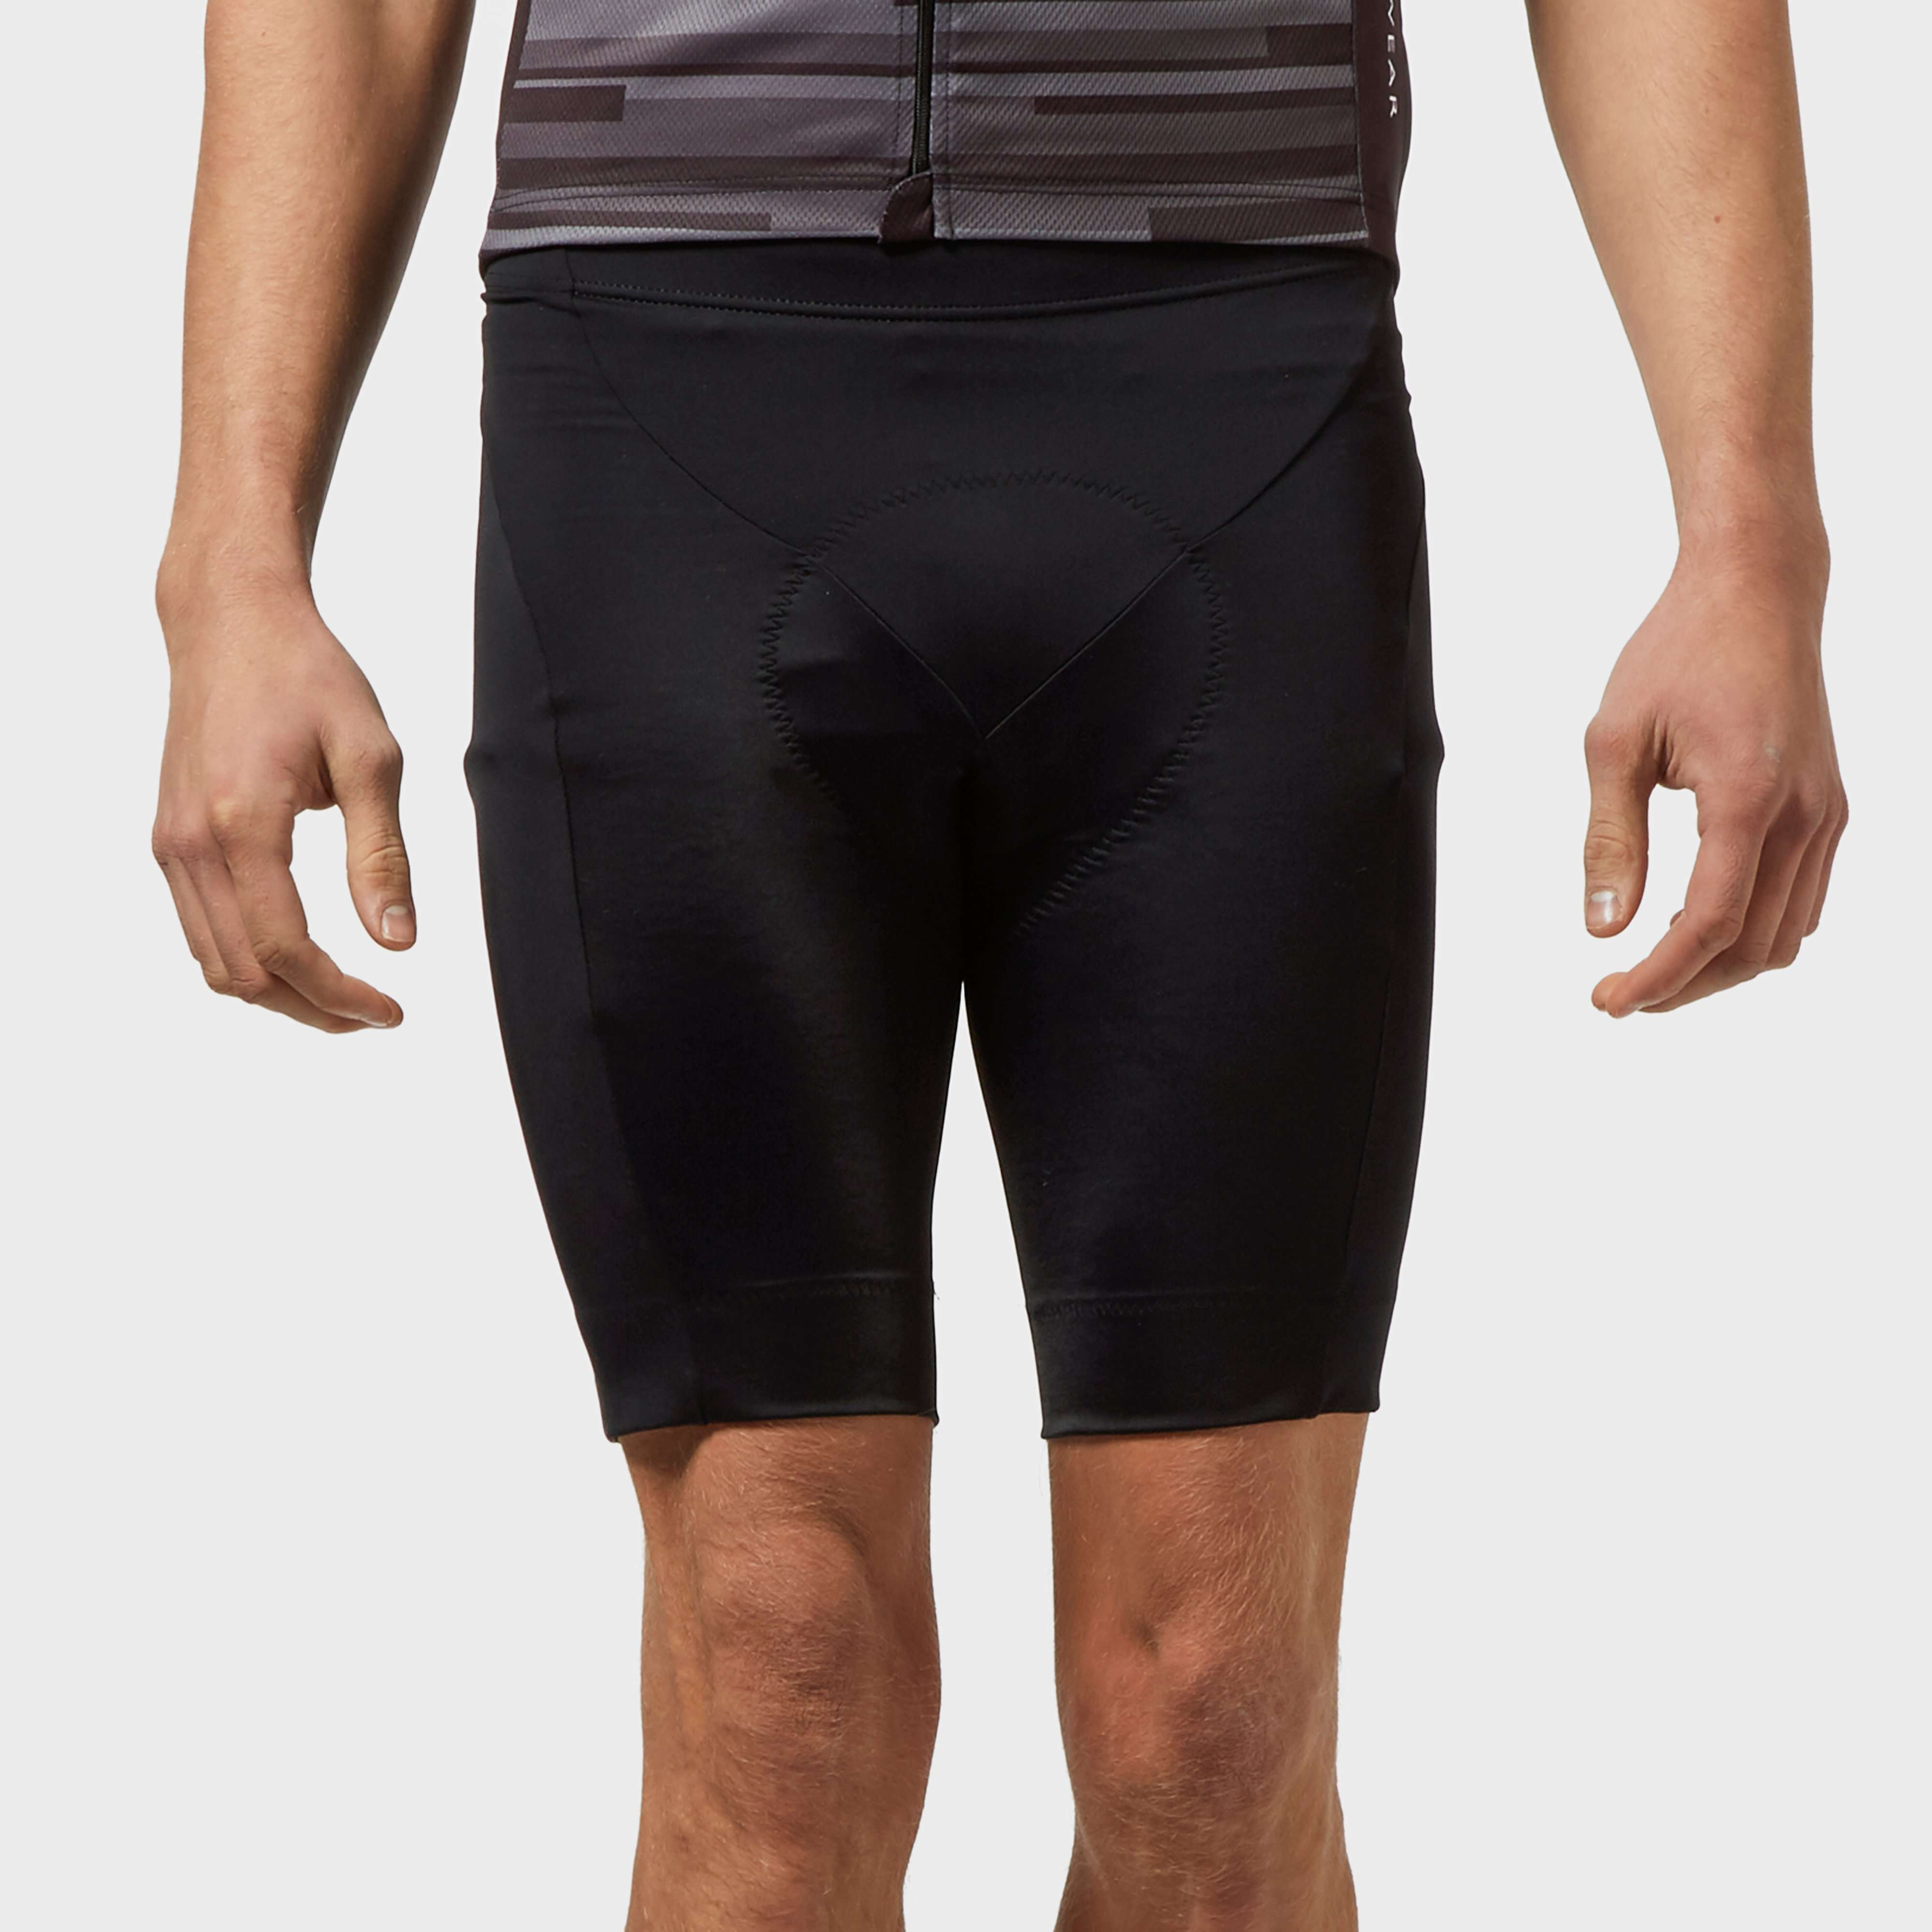 GORE Men's E Tight Shorts